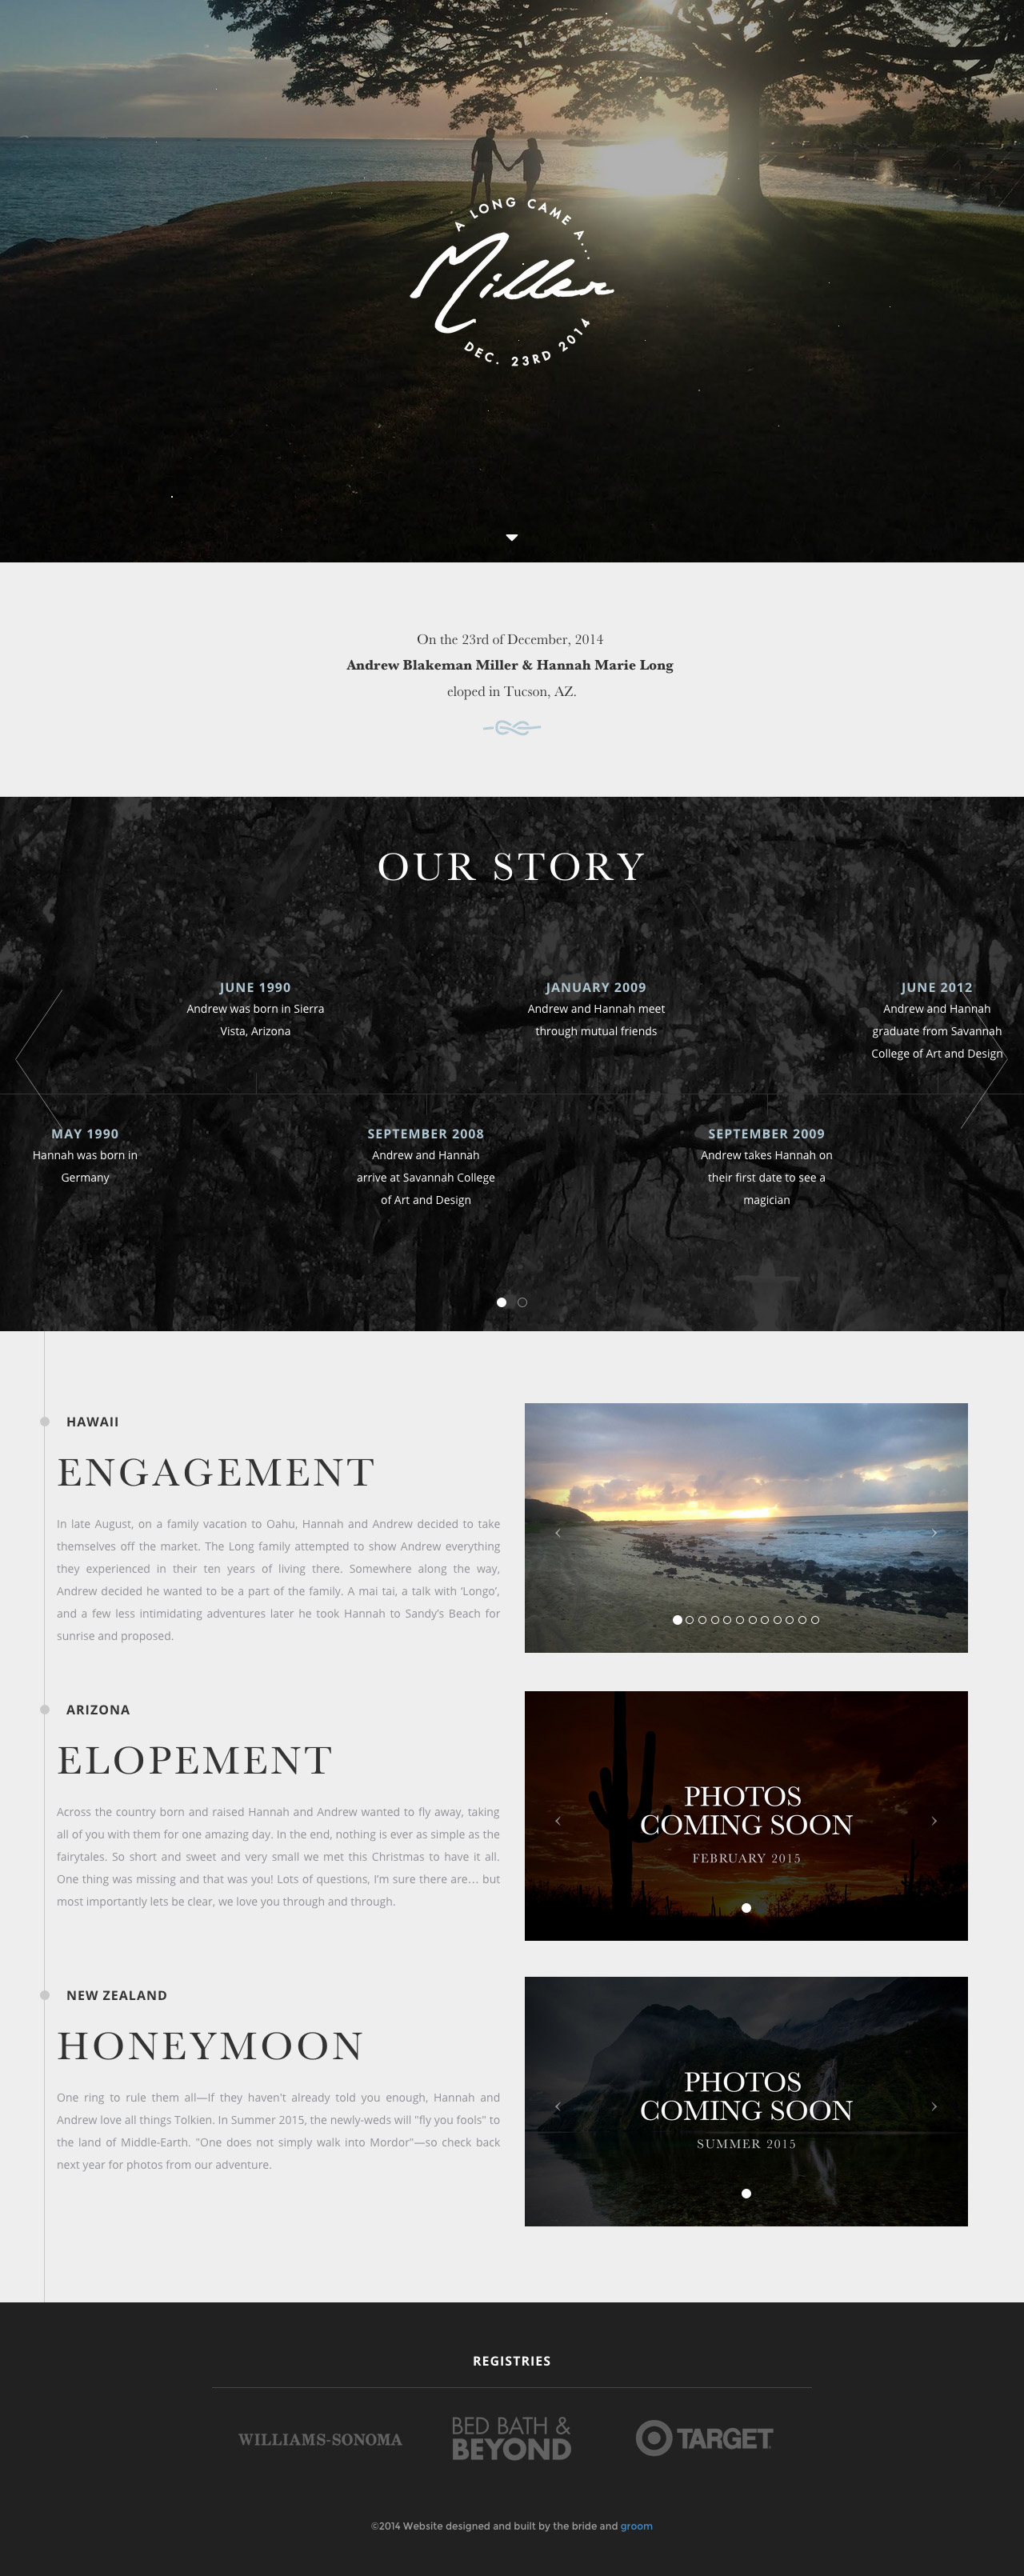 Miller Elopement Website Screenshot